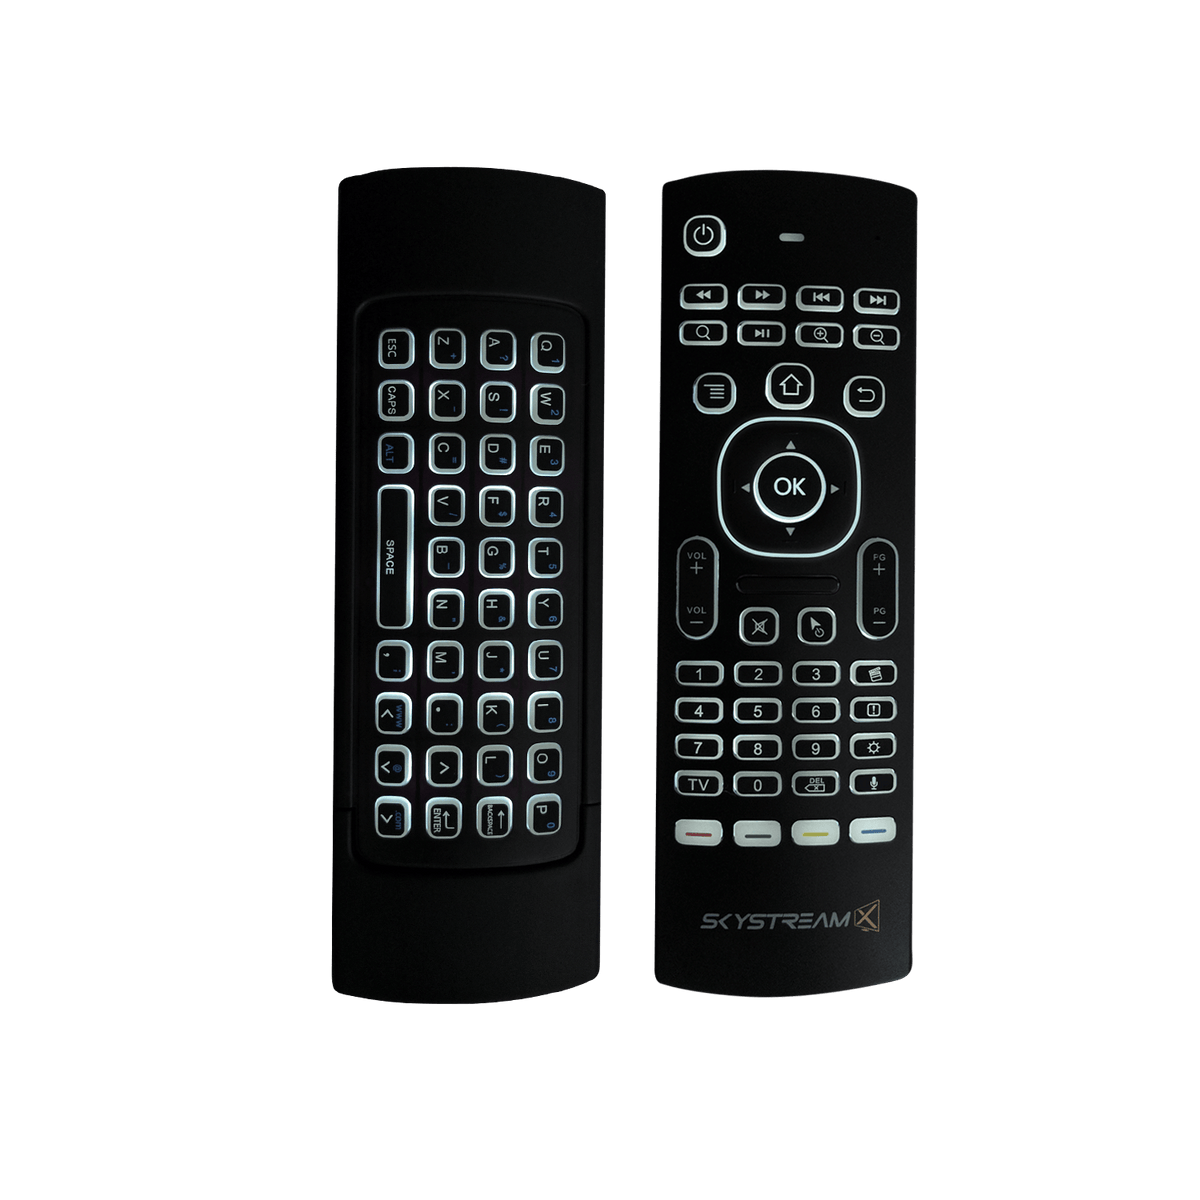 Streaming Player Accessories - SkyStream Air Mouse Remote